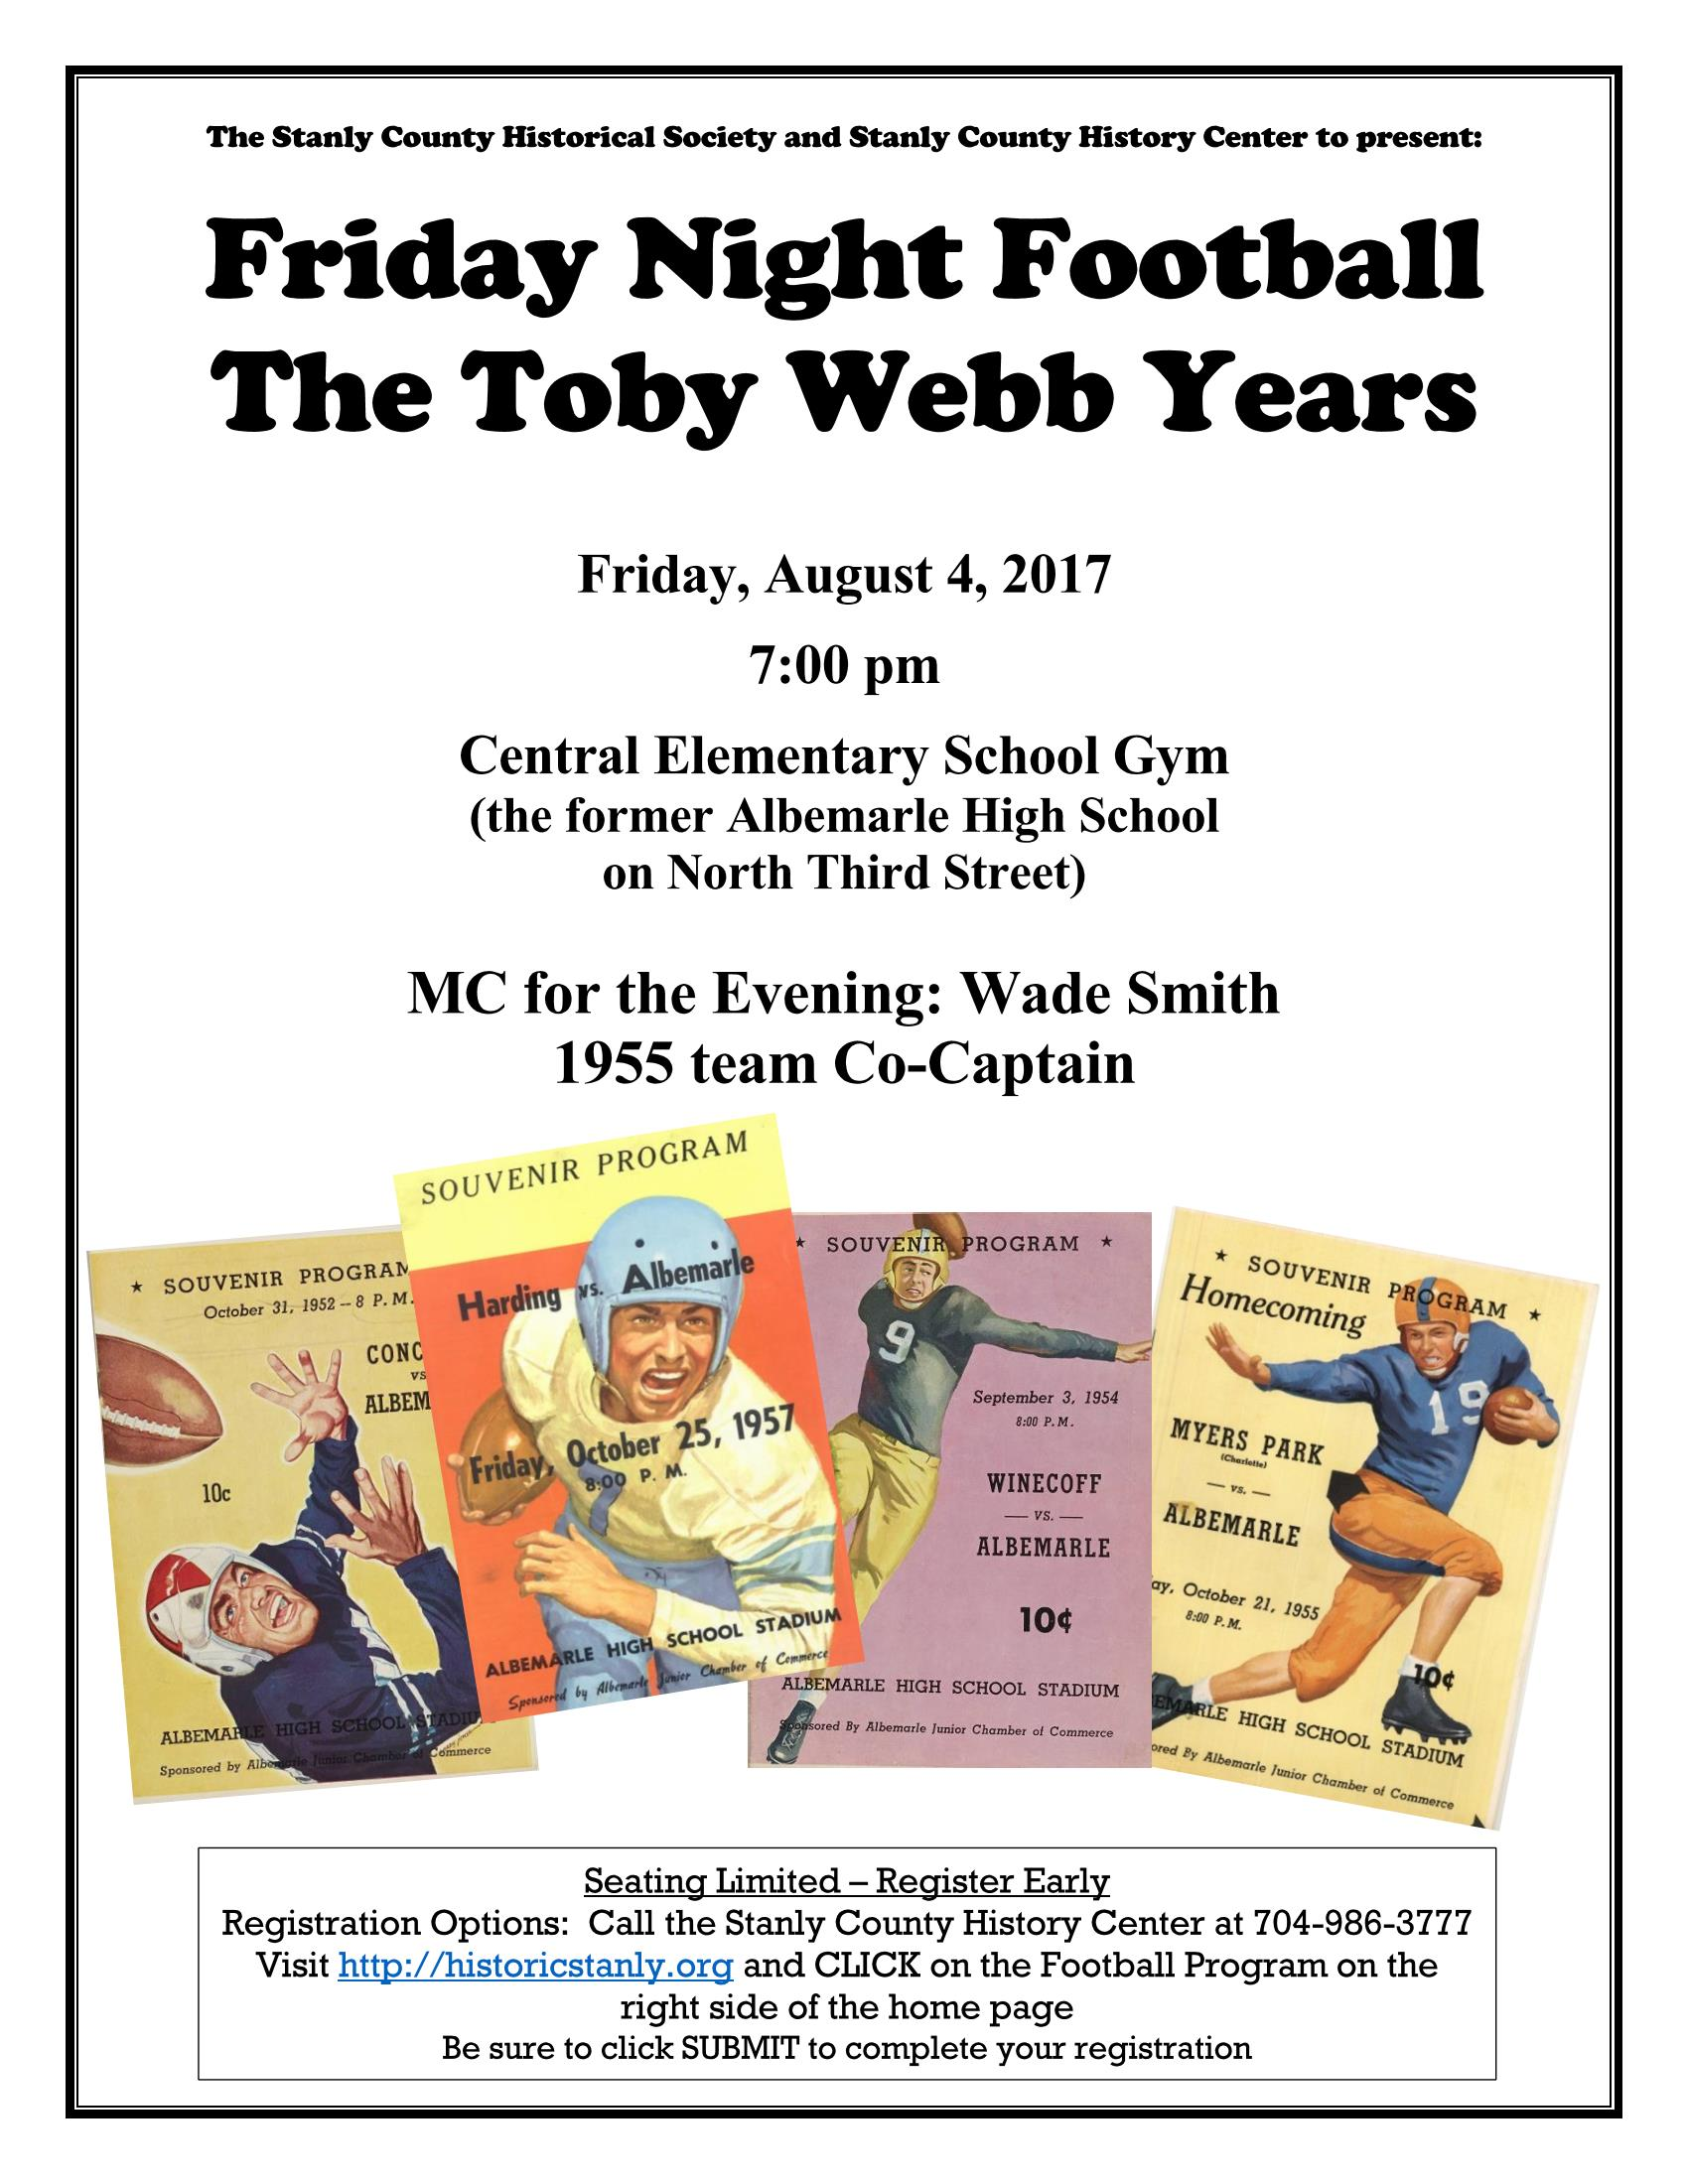 Friday Night Football Flyer - the Toby Webb Years